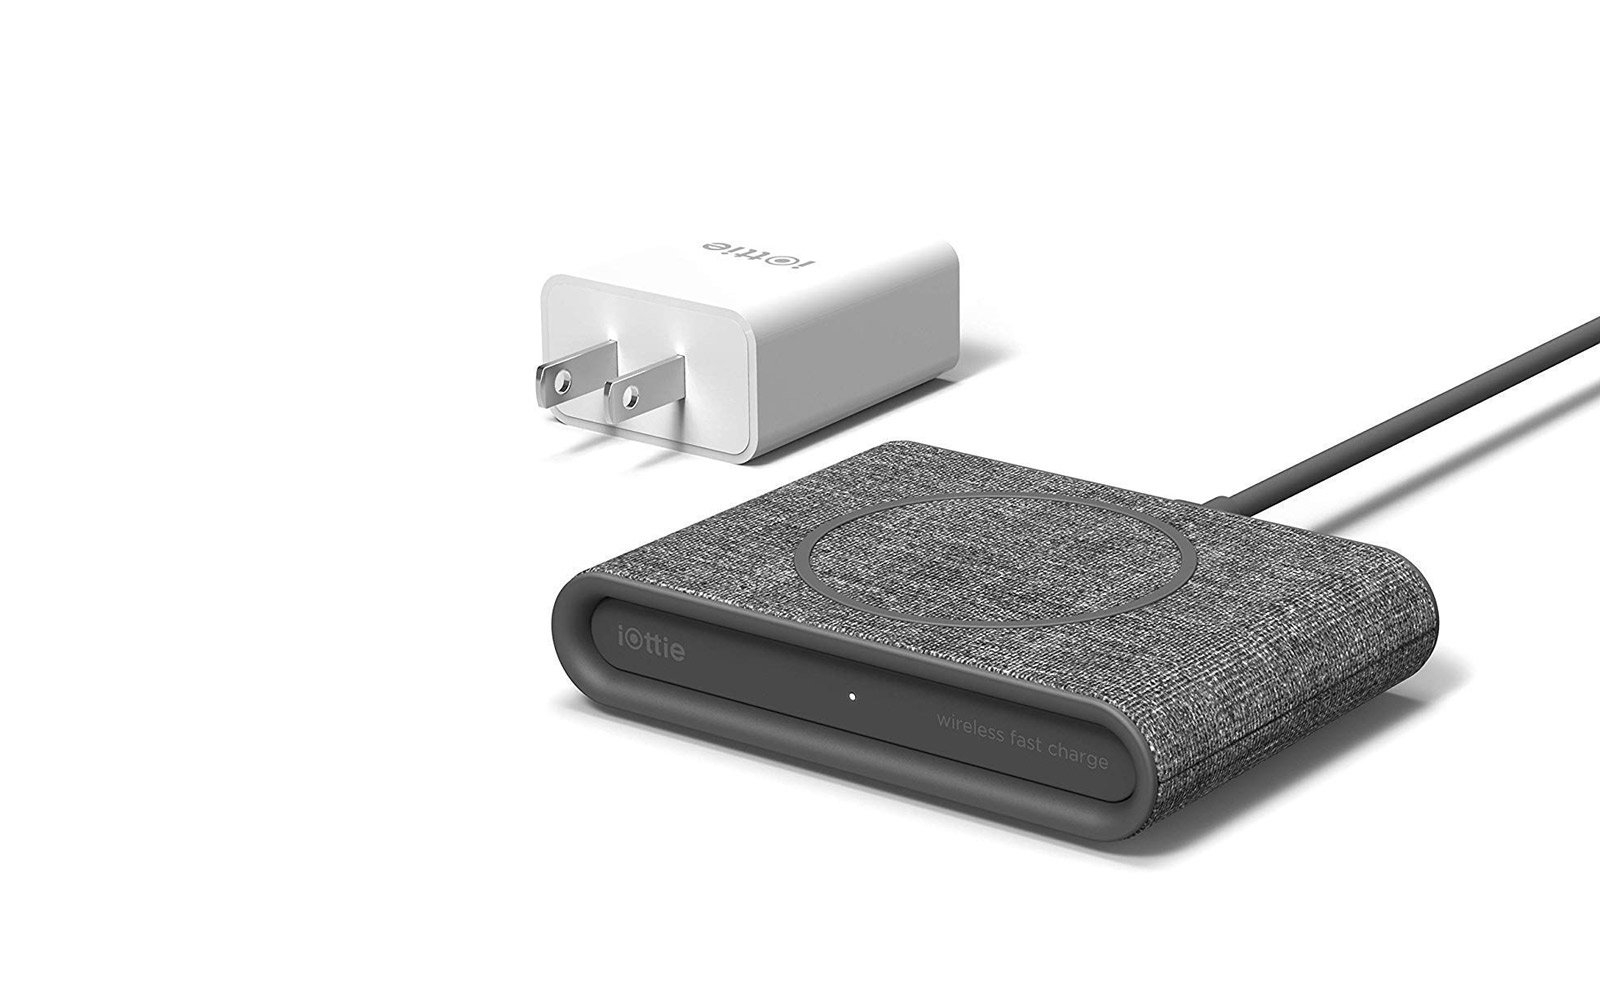 iottie charger